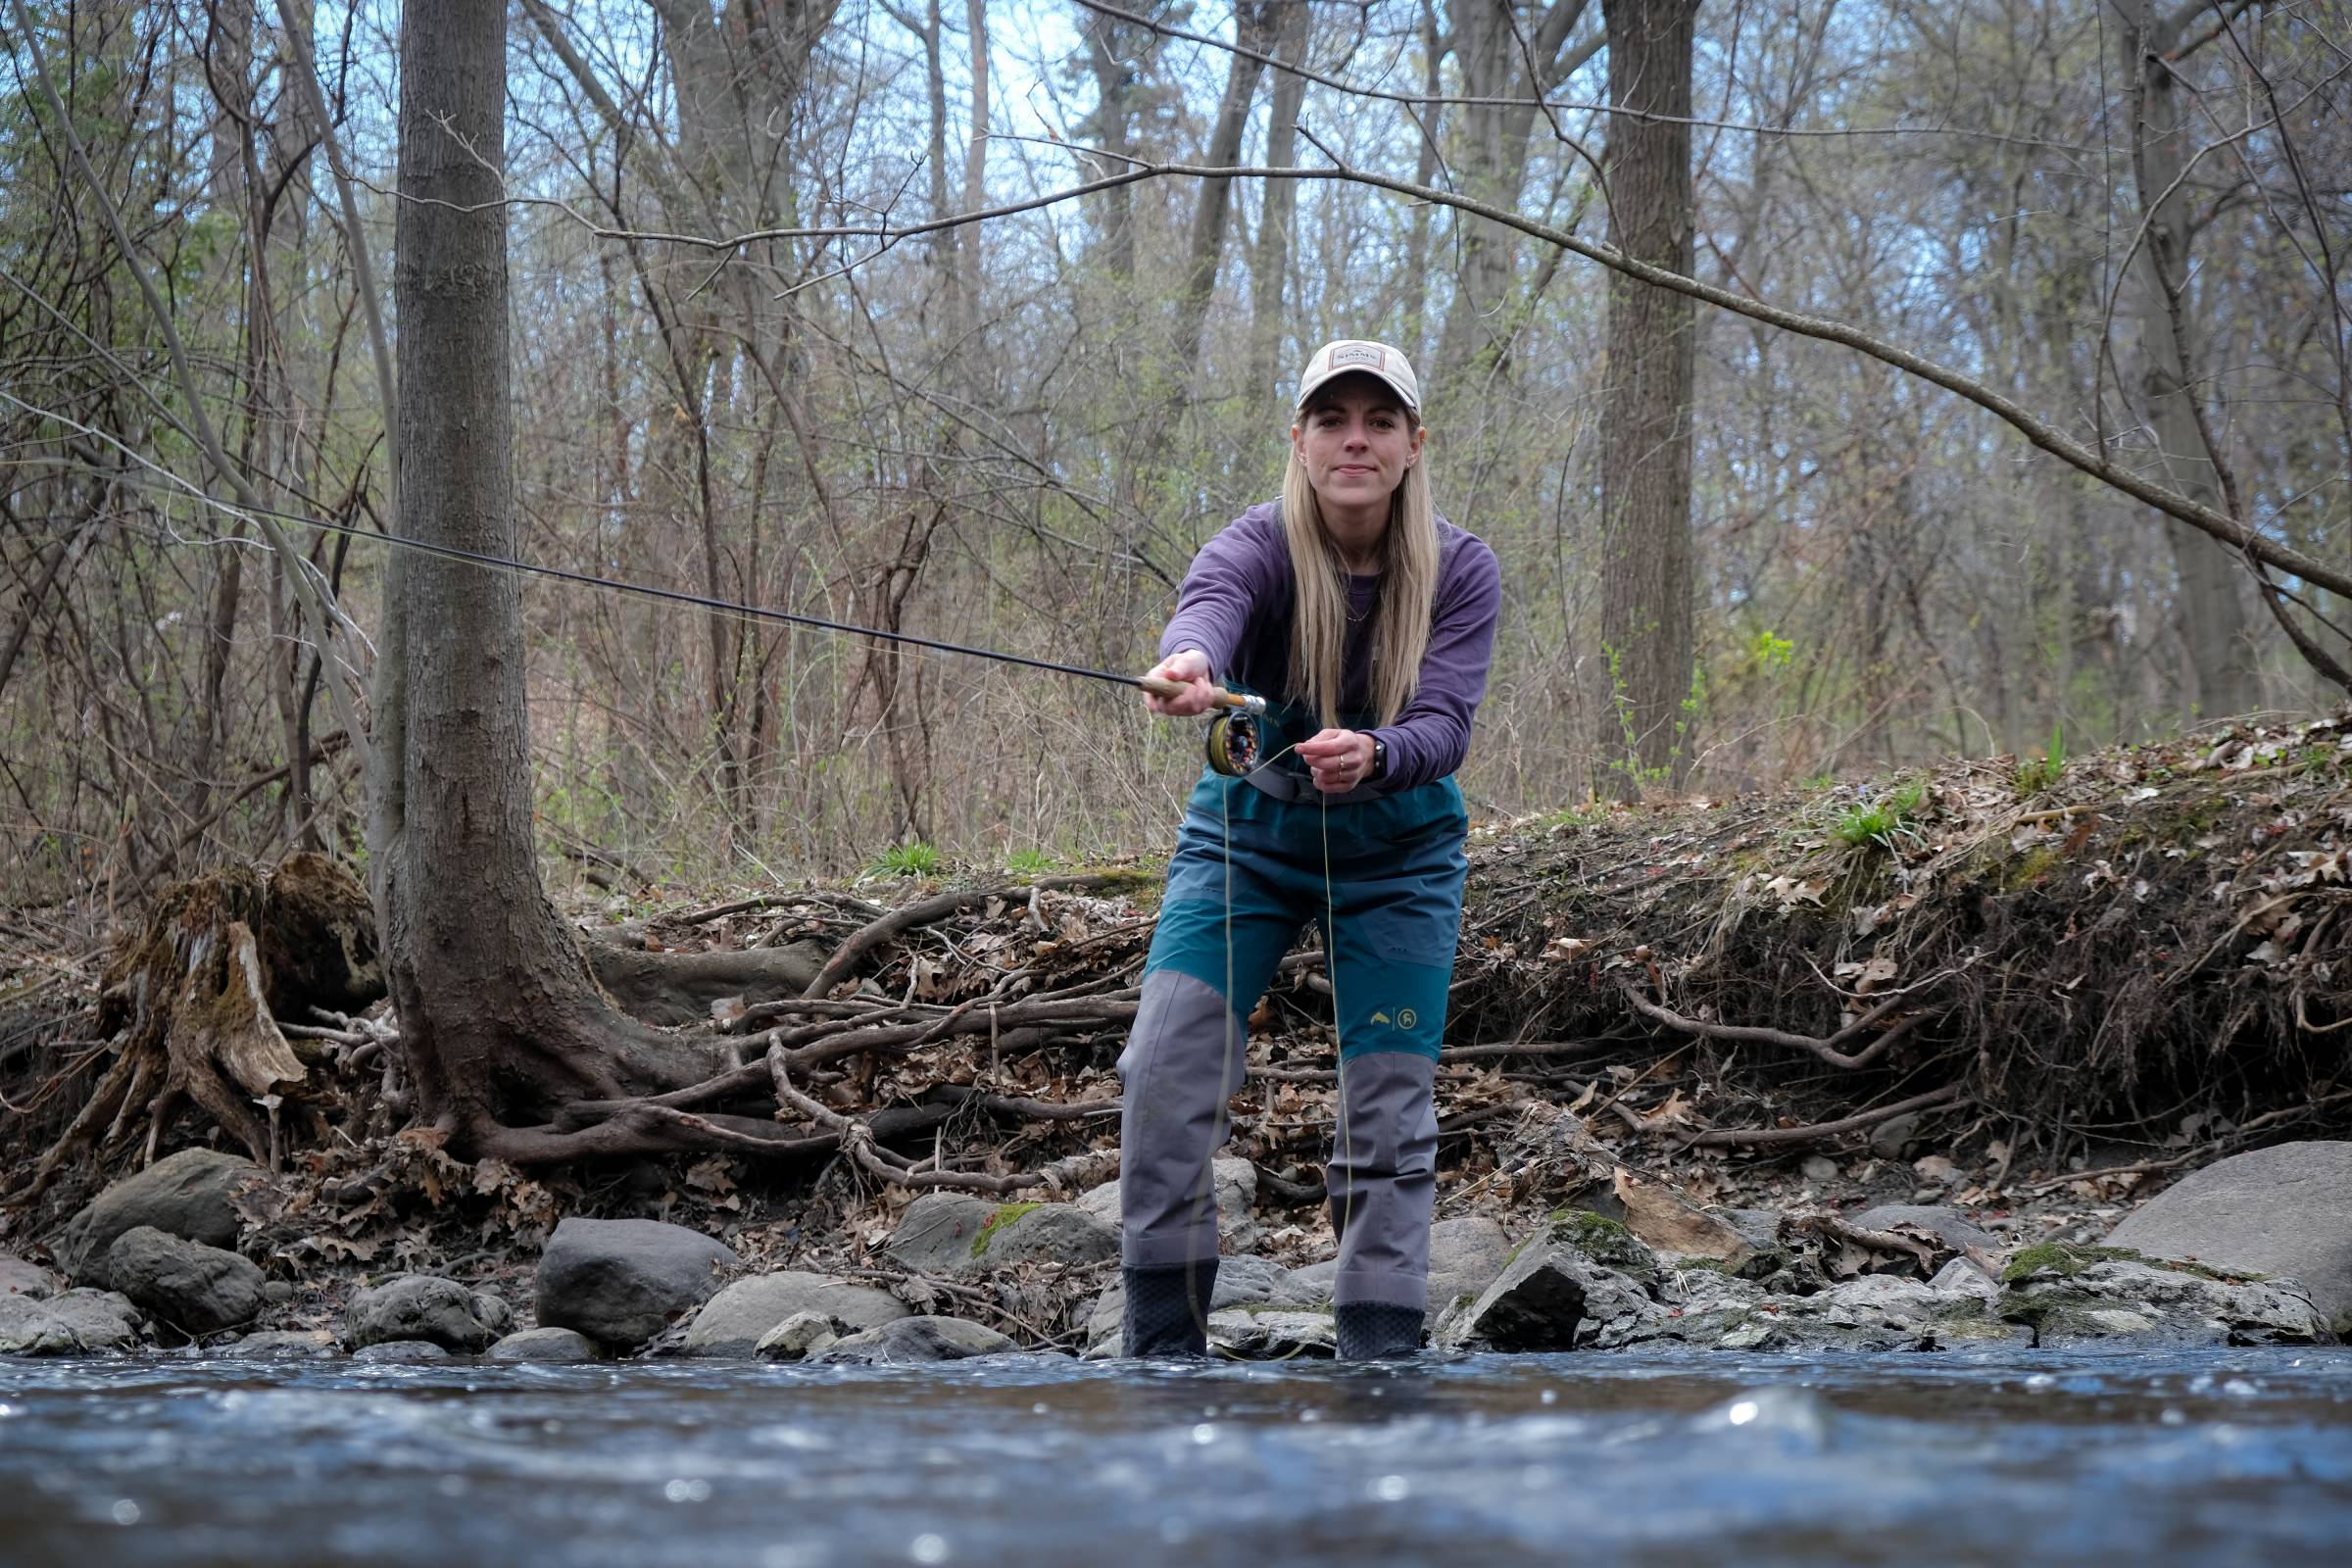 Person casting a fly fishing rod in Simms Backcountry flyweight fly fishing waders lifestyle